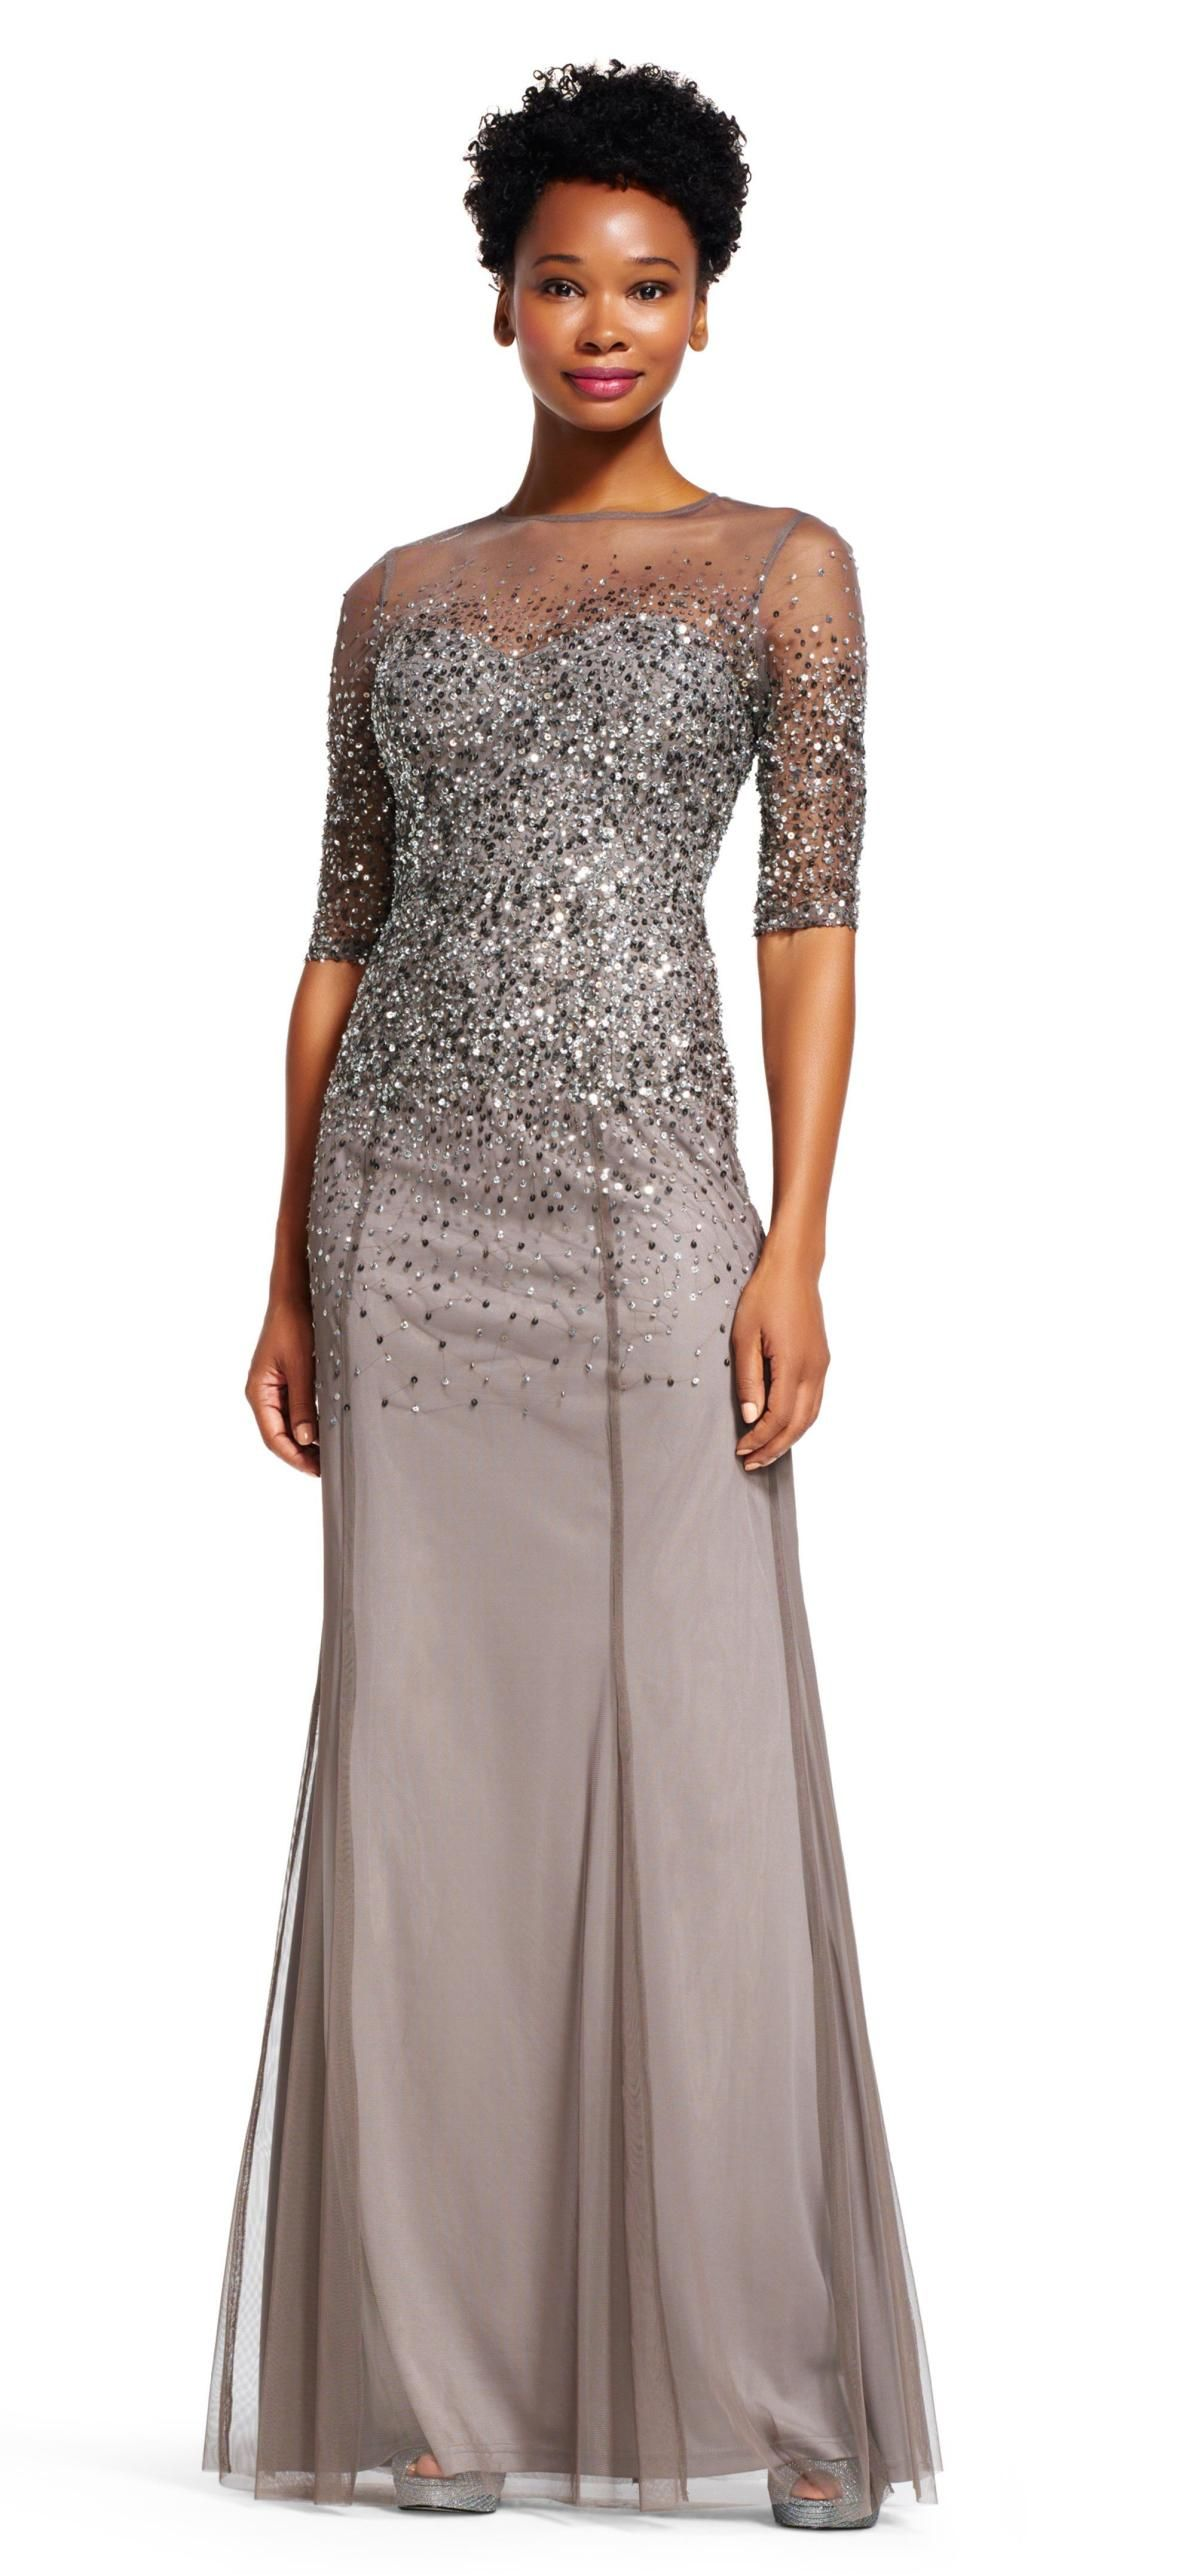 67 Best Beautiful Mother Of The Groom Dresses For Spring Wedding #groomdress